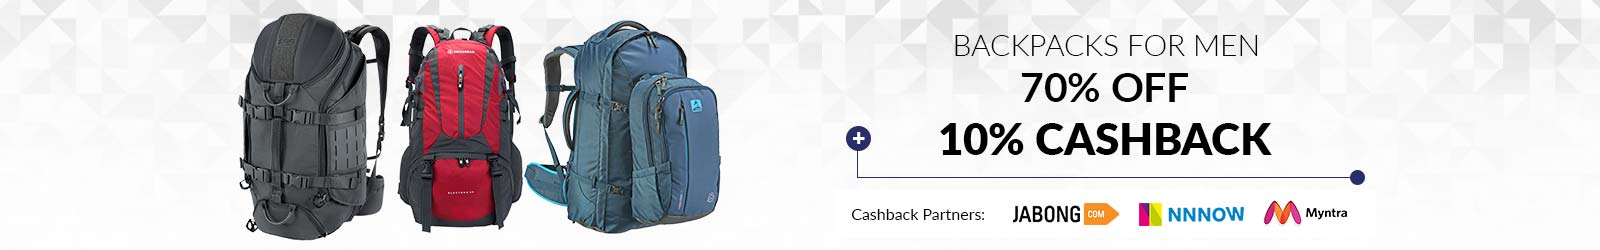 f5b6fb981b Backpacks For Men  Buy Backpacks for Men Online at 70% Discount - 2019